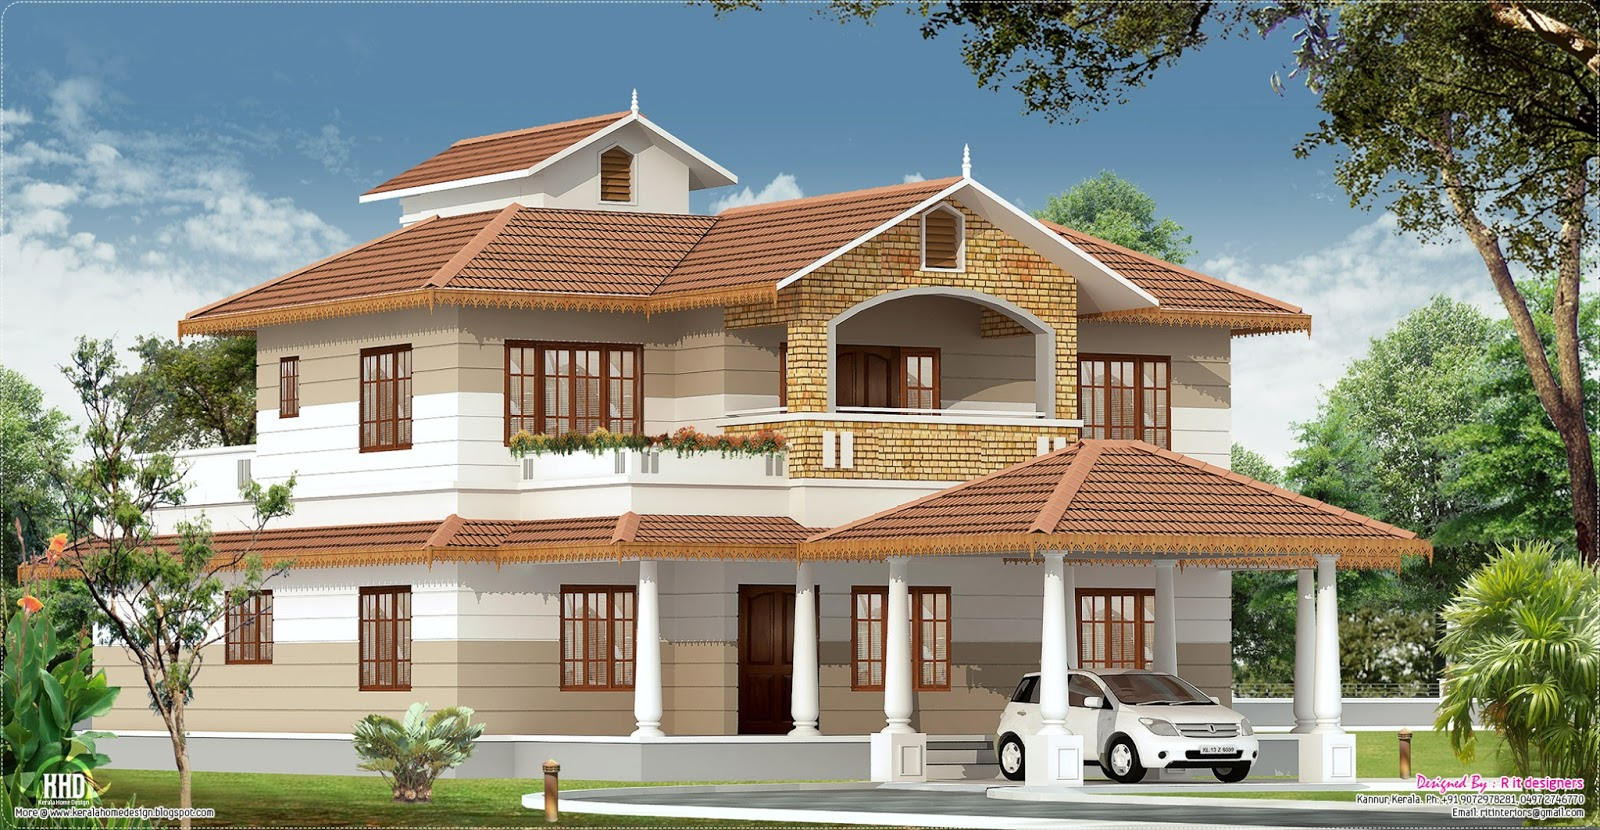 2700 kerala home with interior designs kerala for Kerala house construction plans